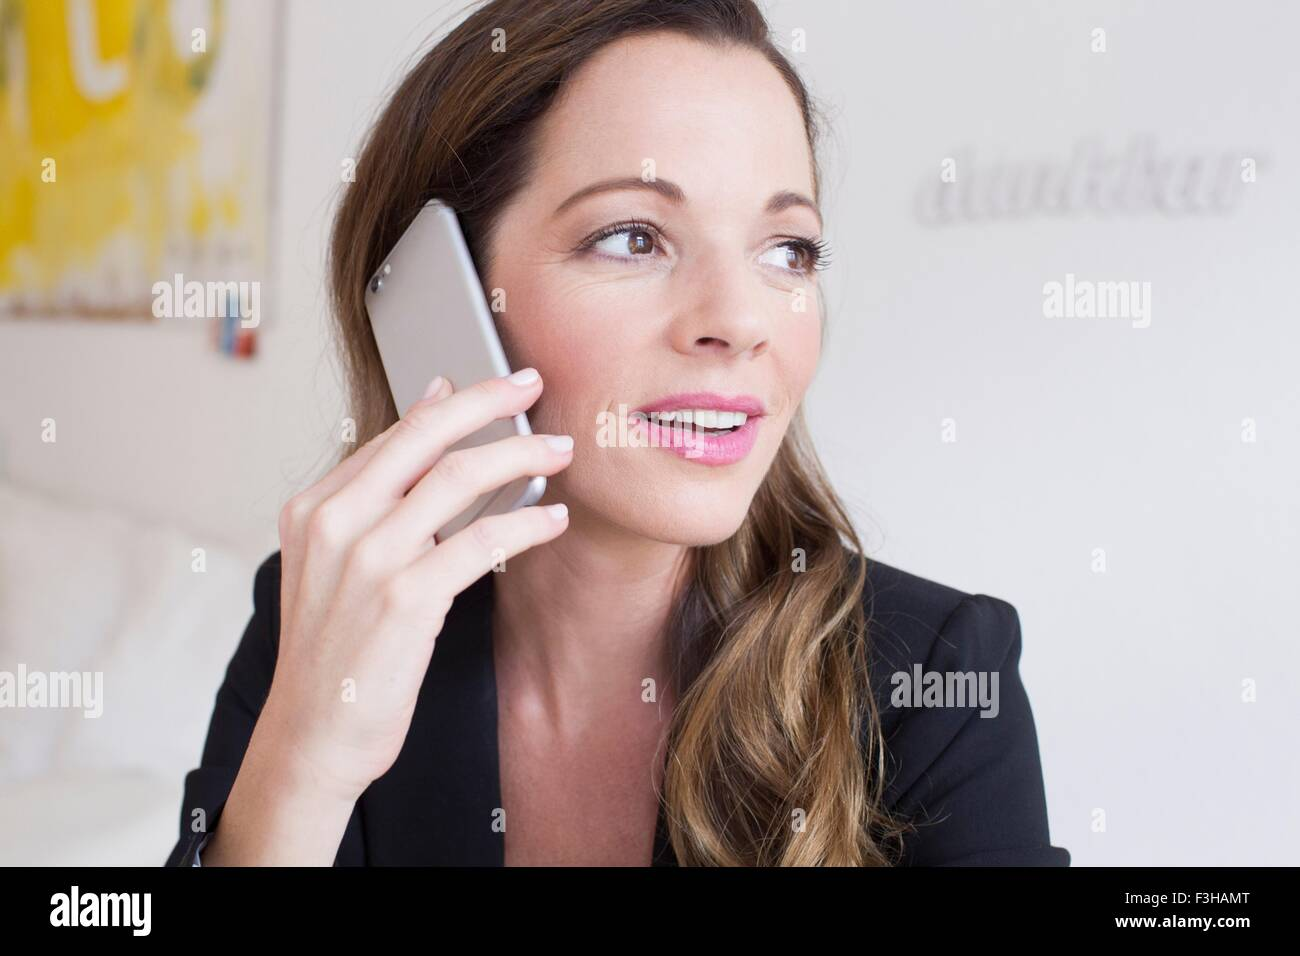 Head and shoulders of mature woman using smartphone looking away - Stock Image